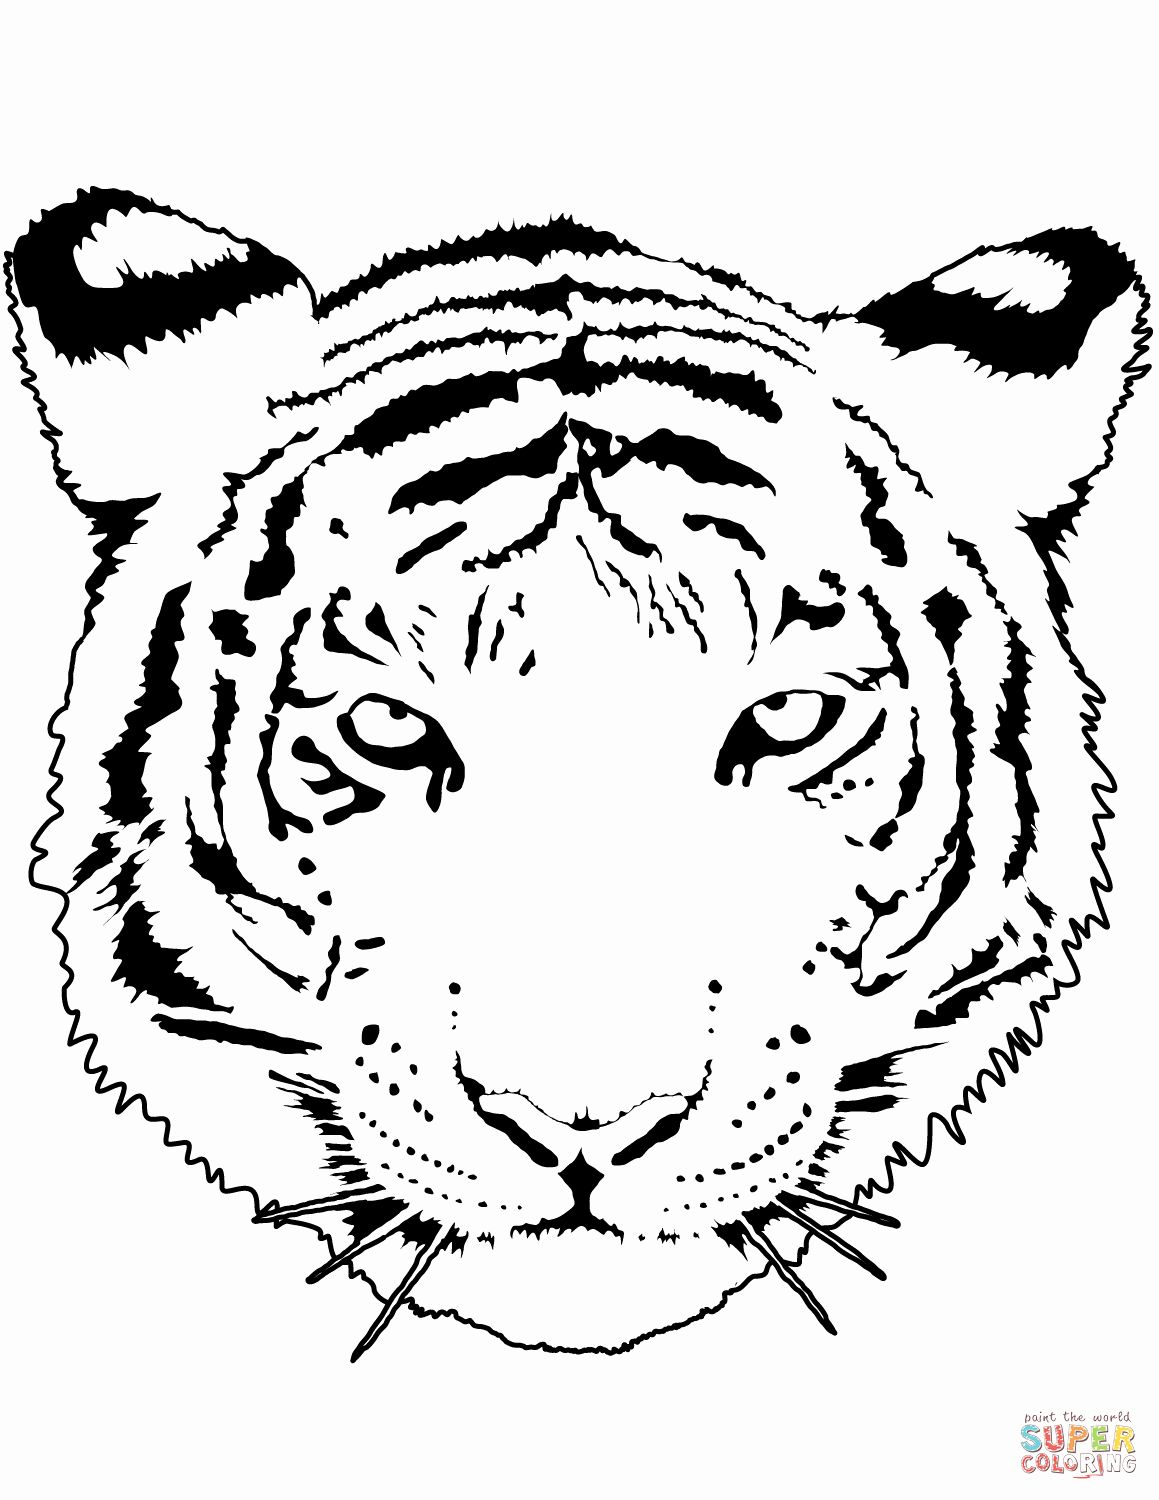 32 Saber Tooth Tiger Coloring Page In